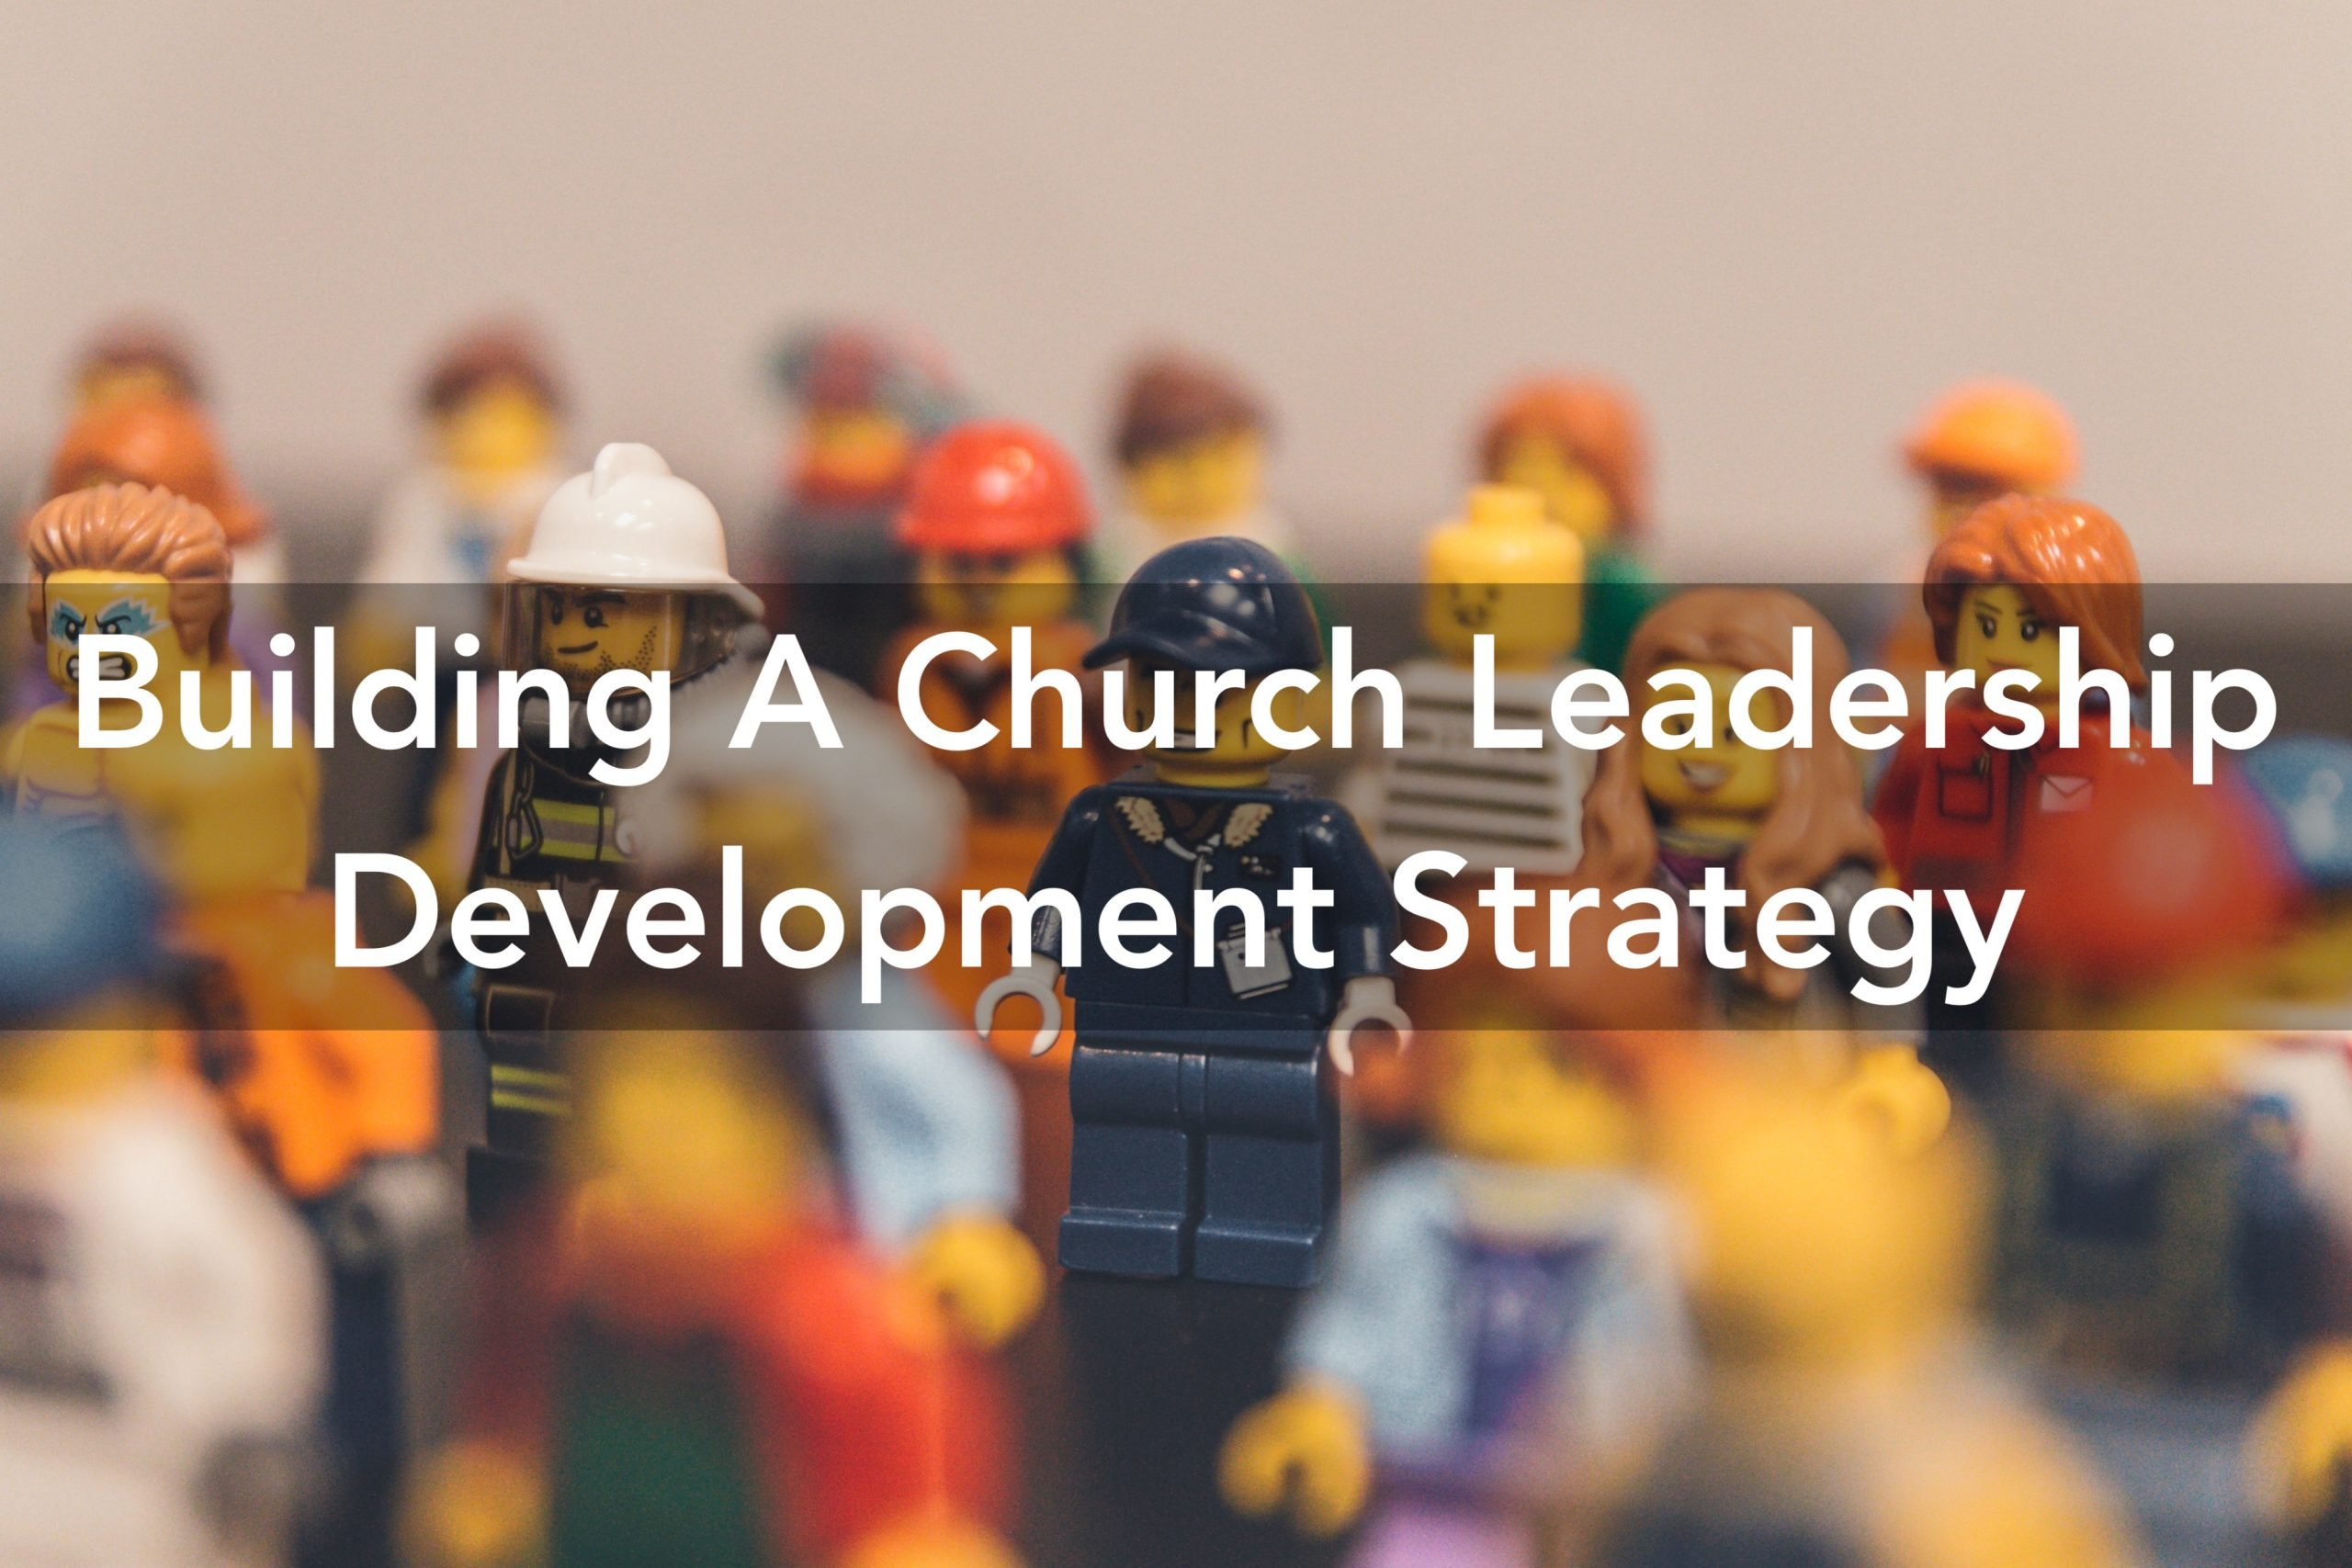 Building A Church Leadership Development Strategy